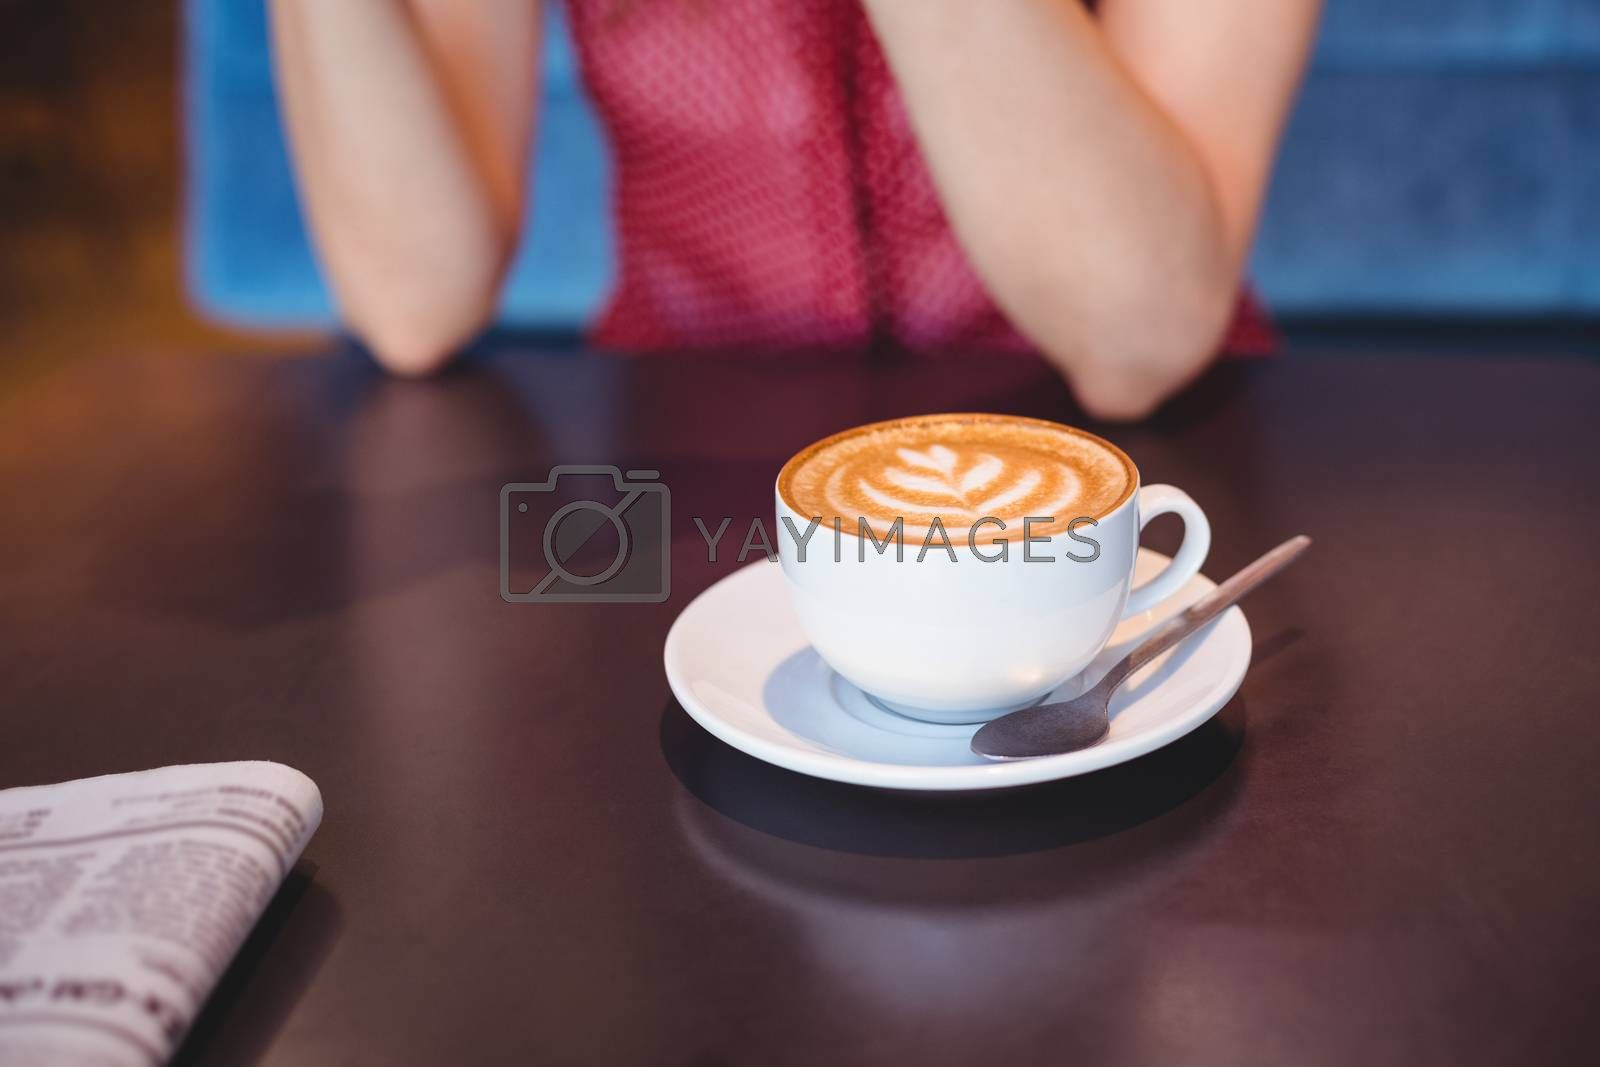 Royalty free image of a cup of coffee on the table  by Wavebreakmedia